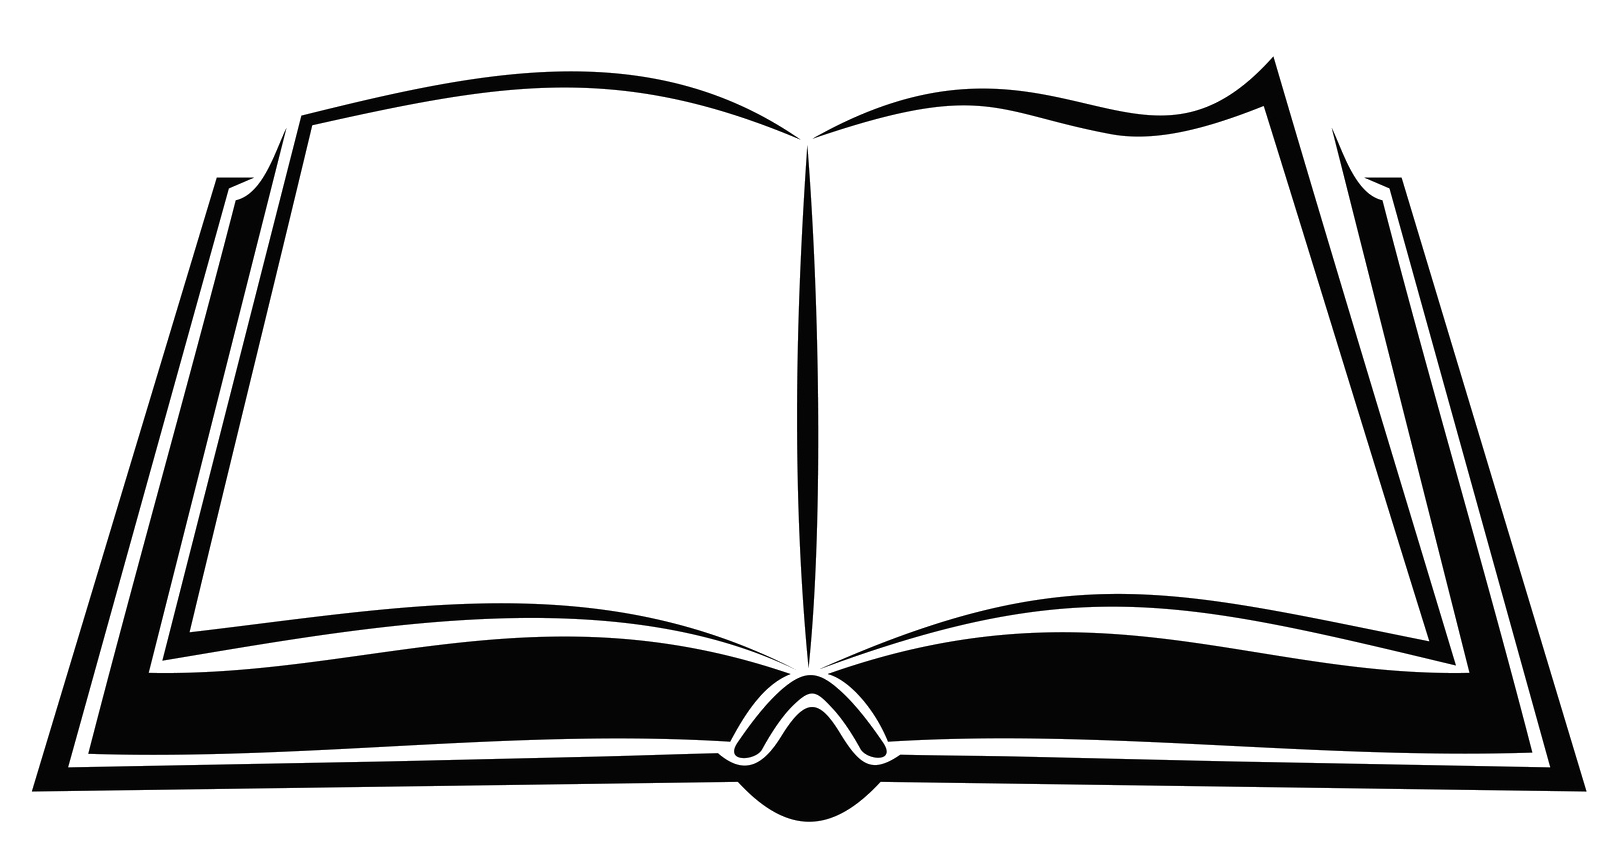 svg black and white stock Black and white open book clipart.  collection of transparent